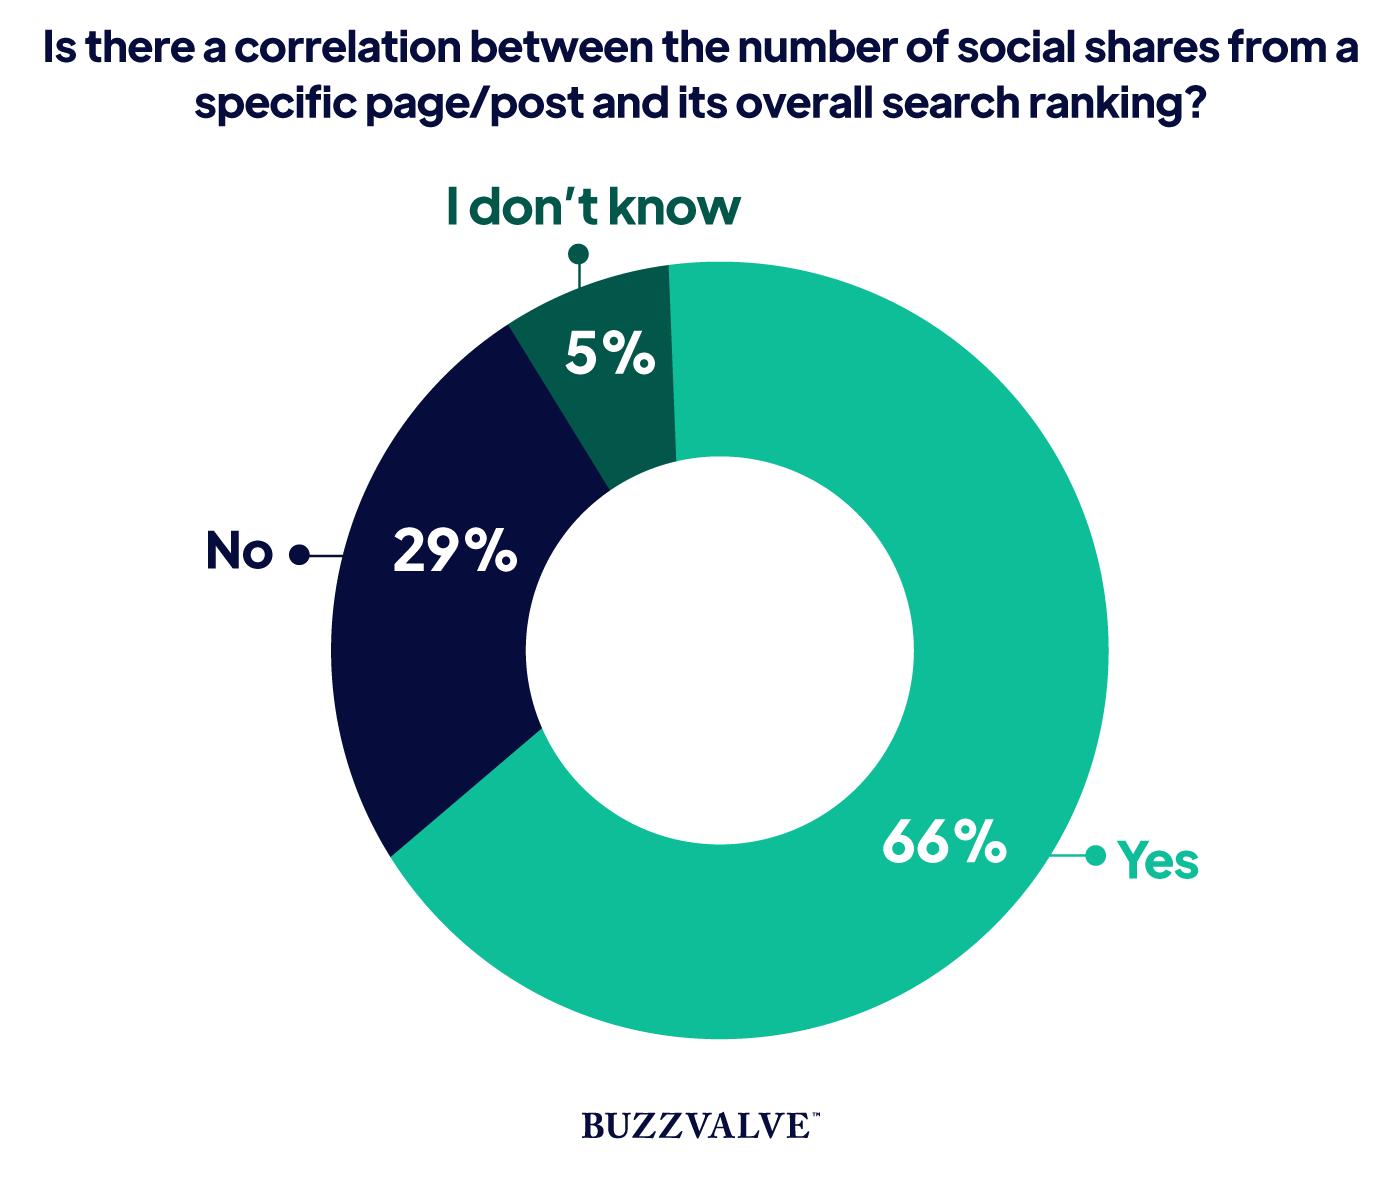 Correlation between number of social shares and its overall search ranking